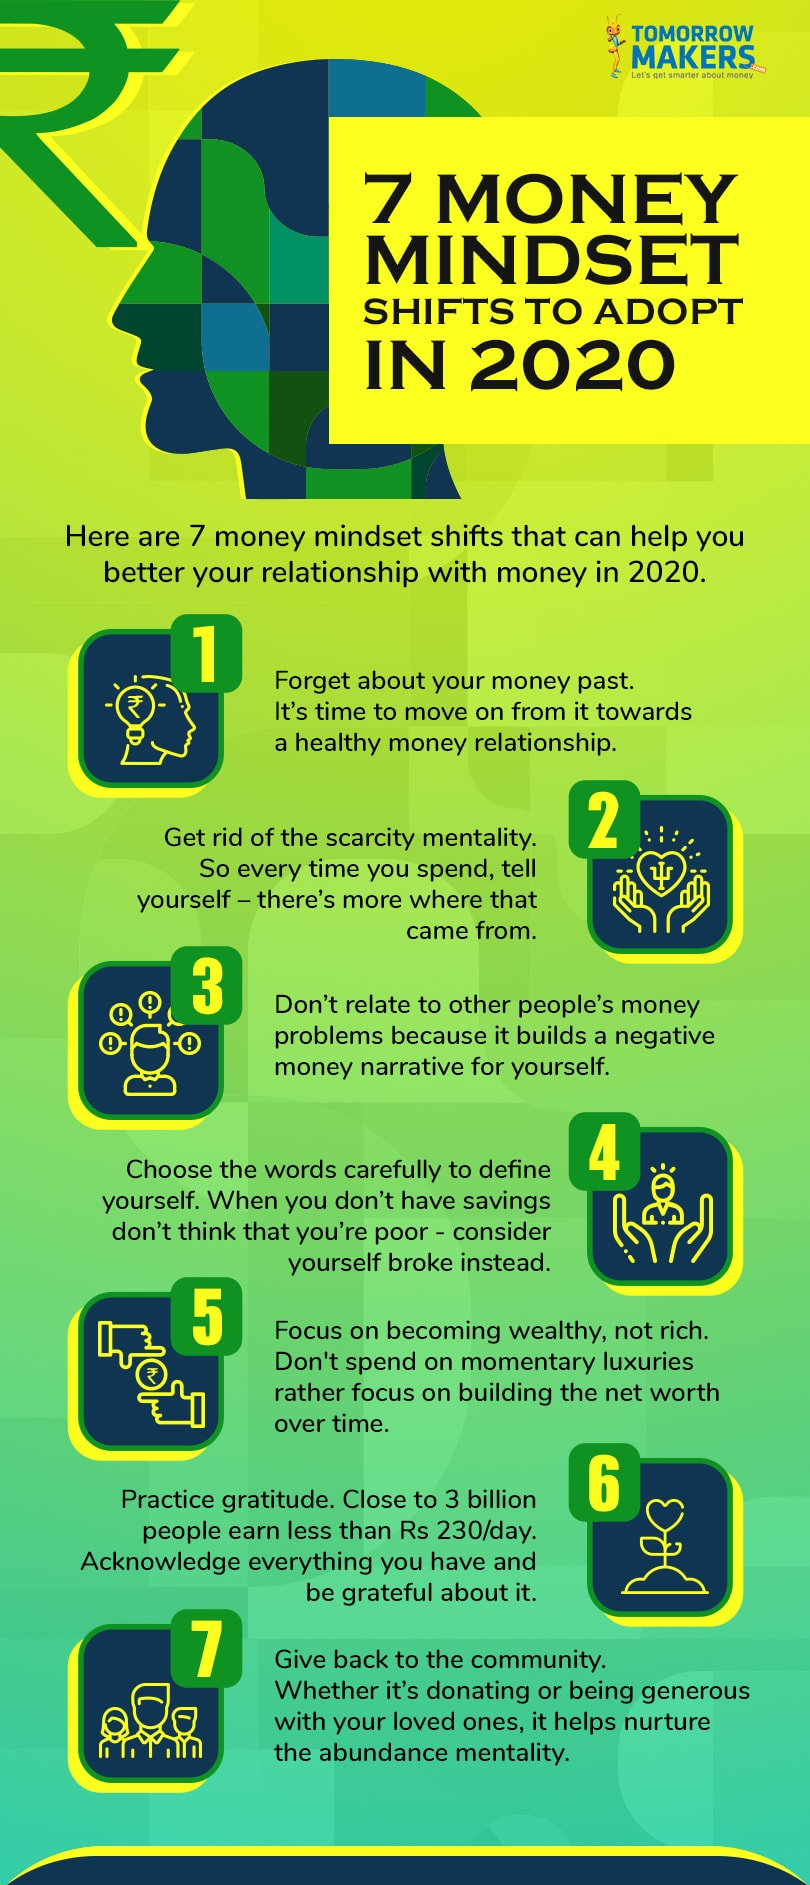 7 Money mindset shifts to adopt in 2020